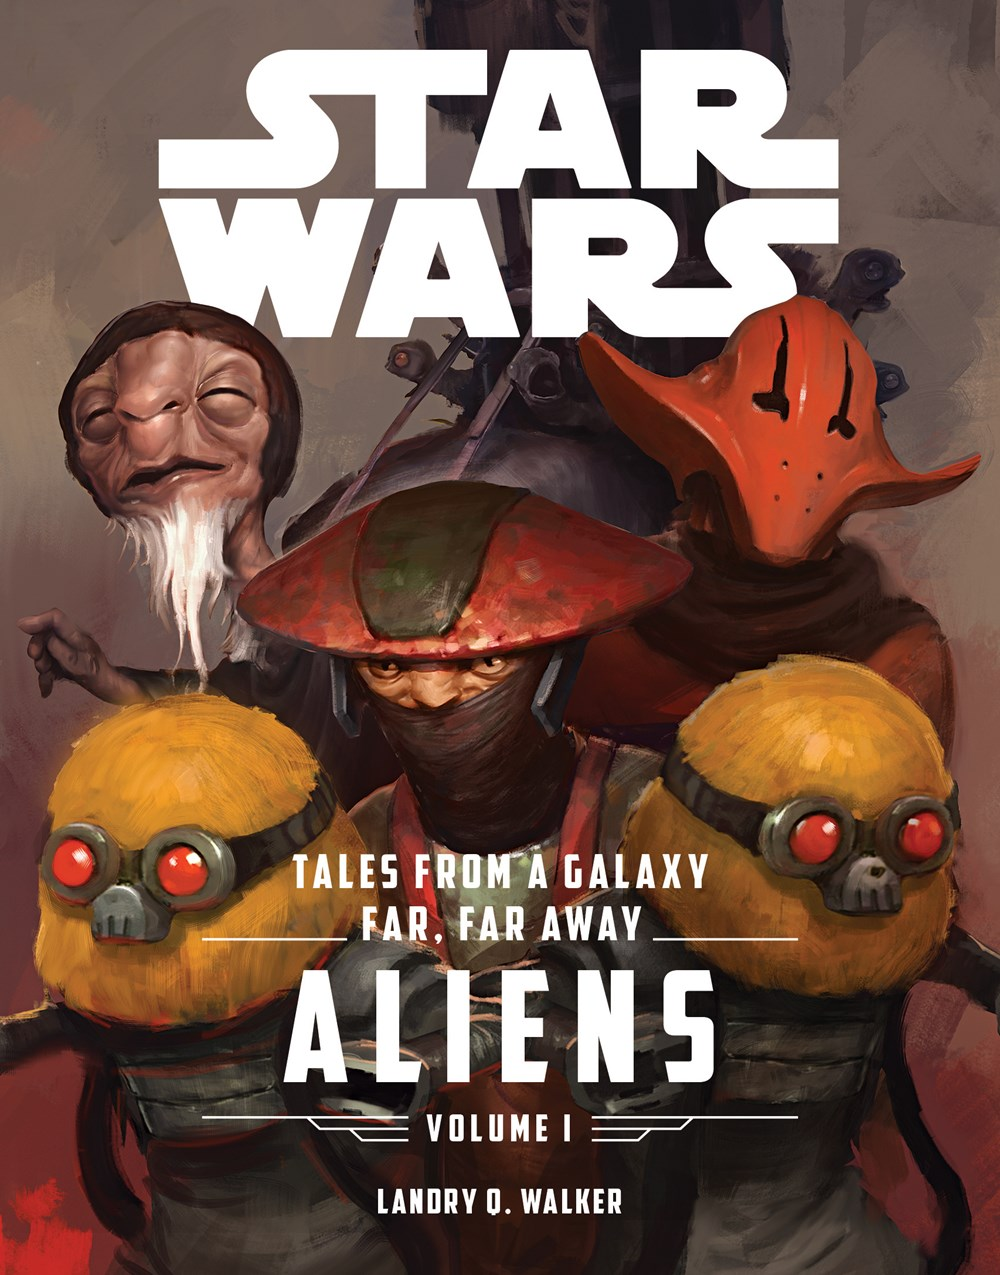 'Tales From A Galaxy Far, Far Away' by Landry Q. Walker (reviewed by Skuldren)